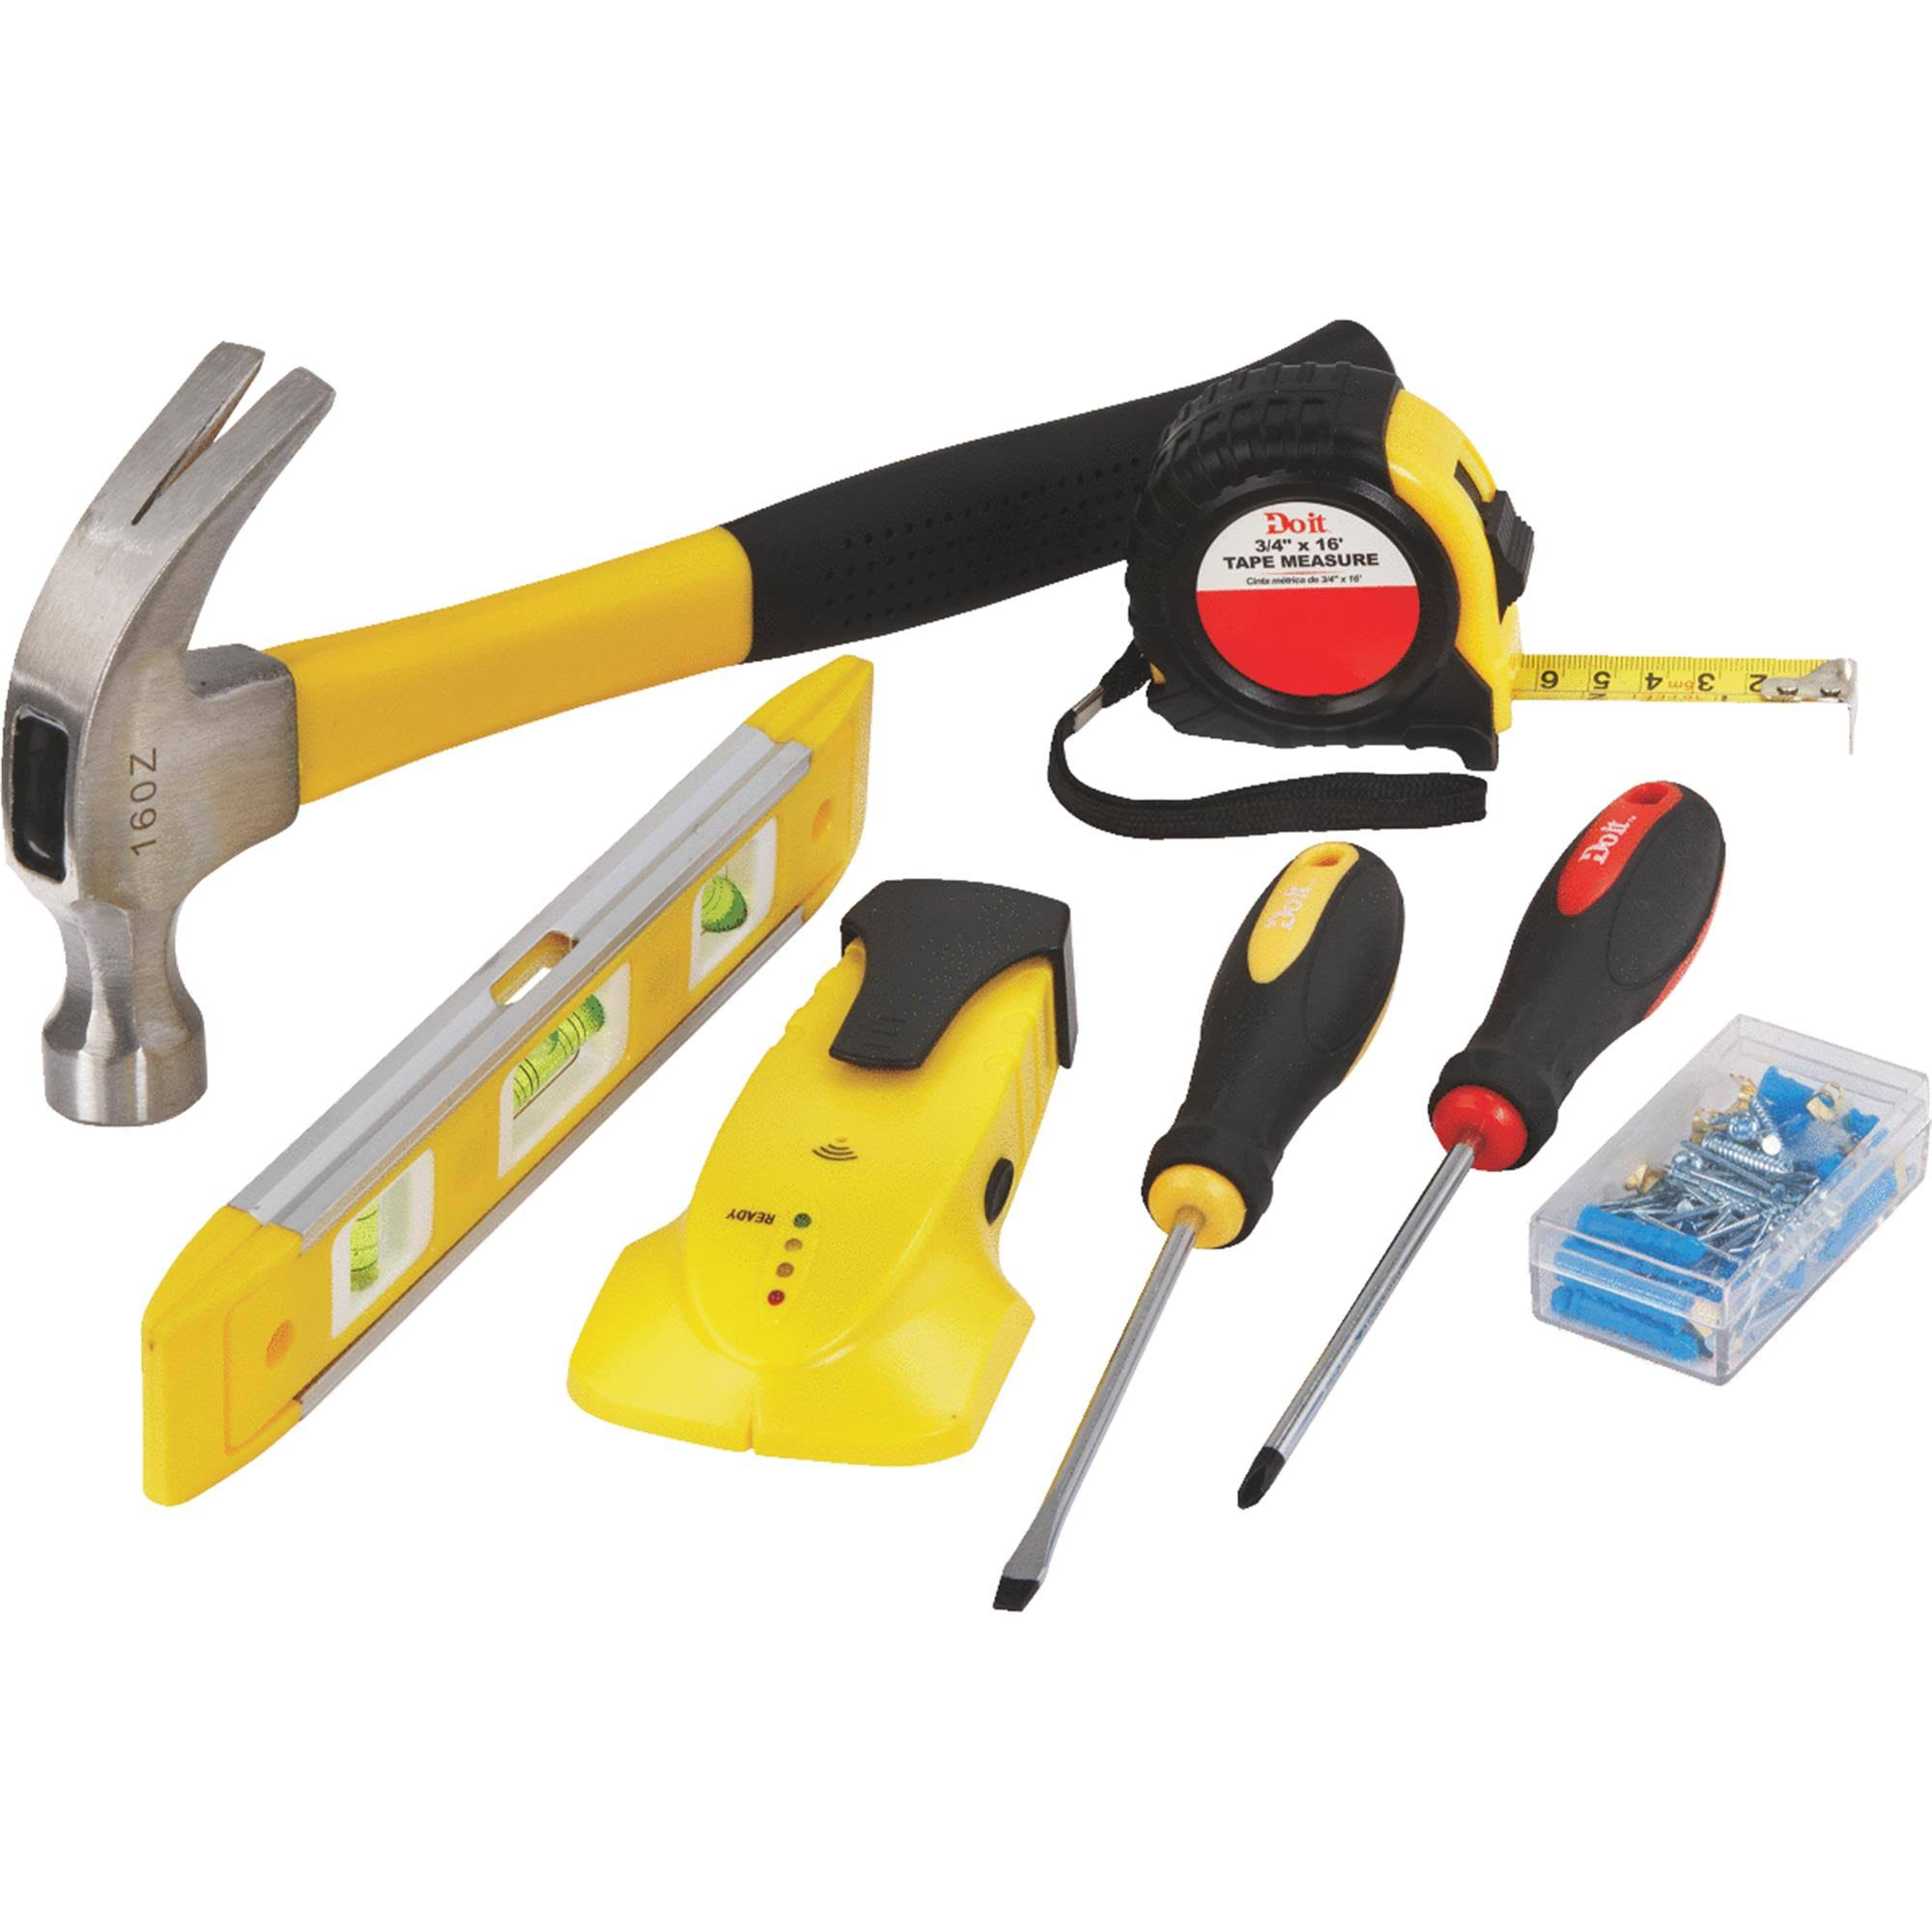 Do It Home Tool Set - 13.5